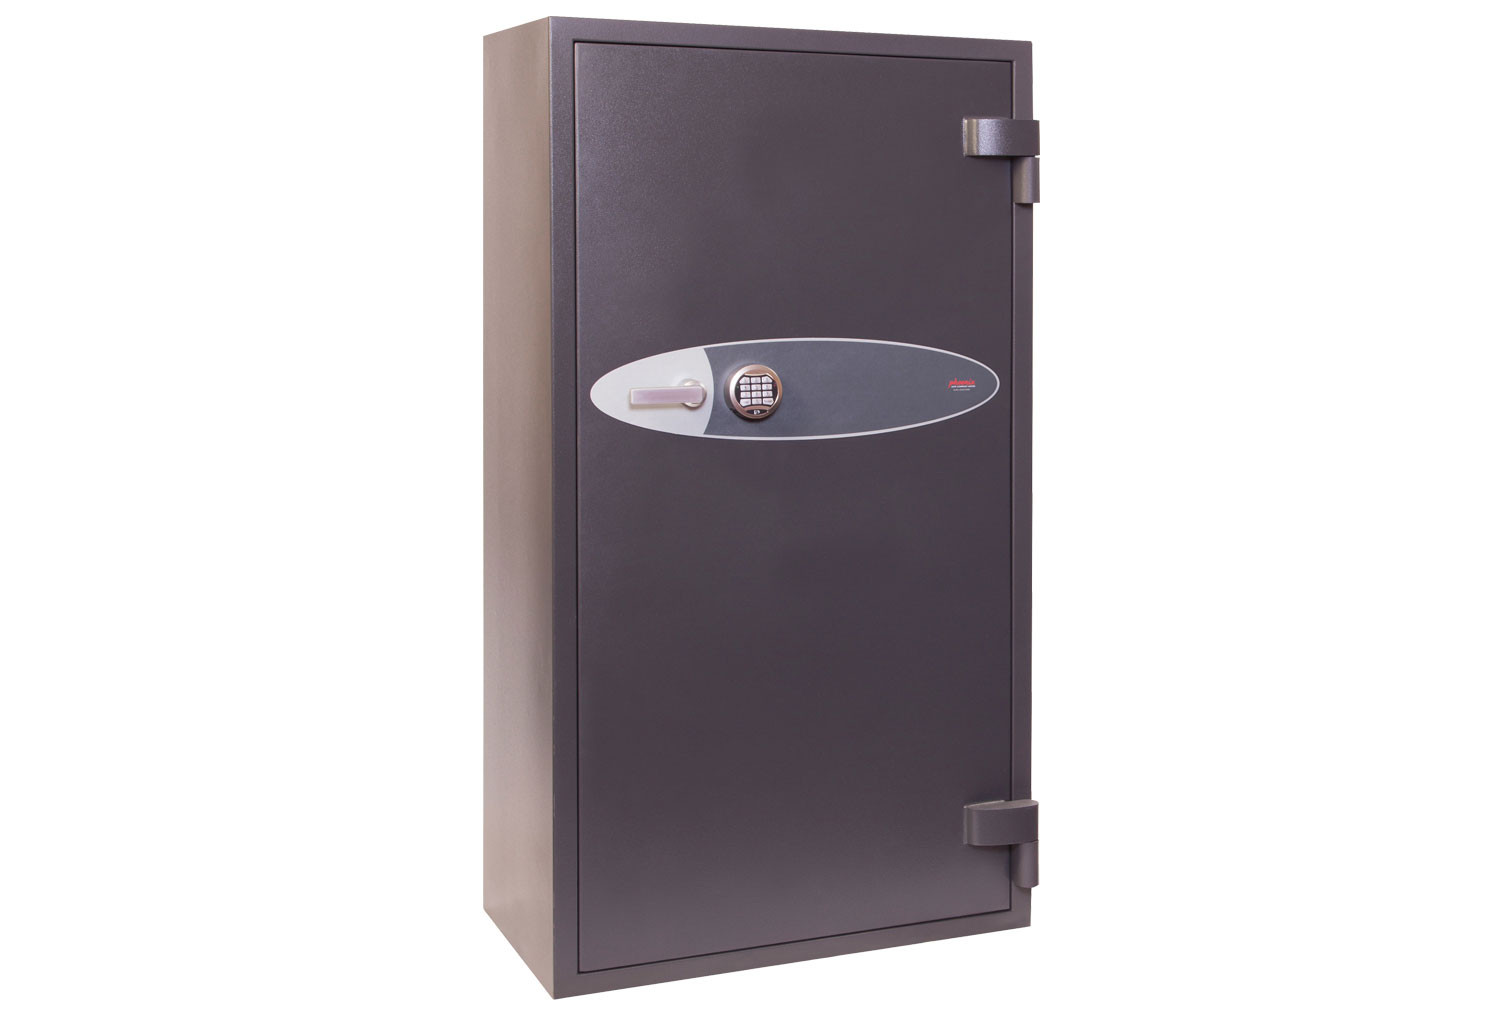 Phoenix Elara HS3556E High Security Safe With Electronic Lock (417ltrs)